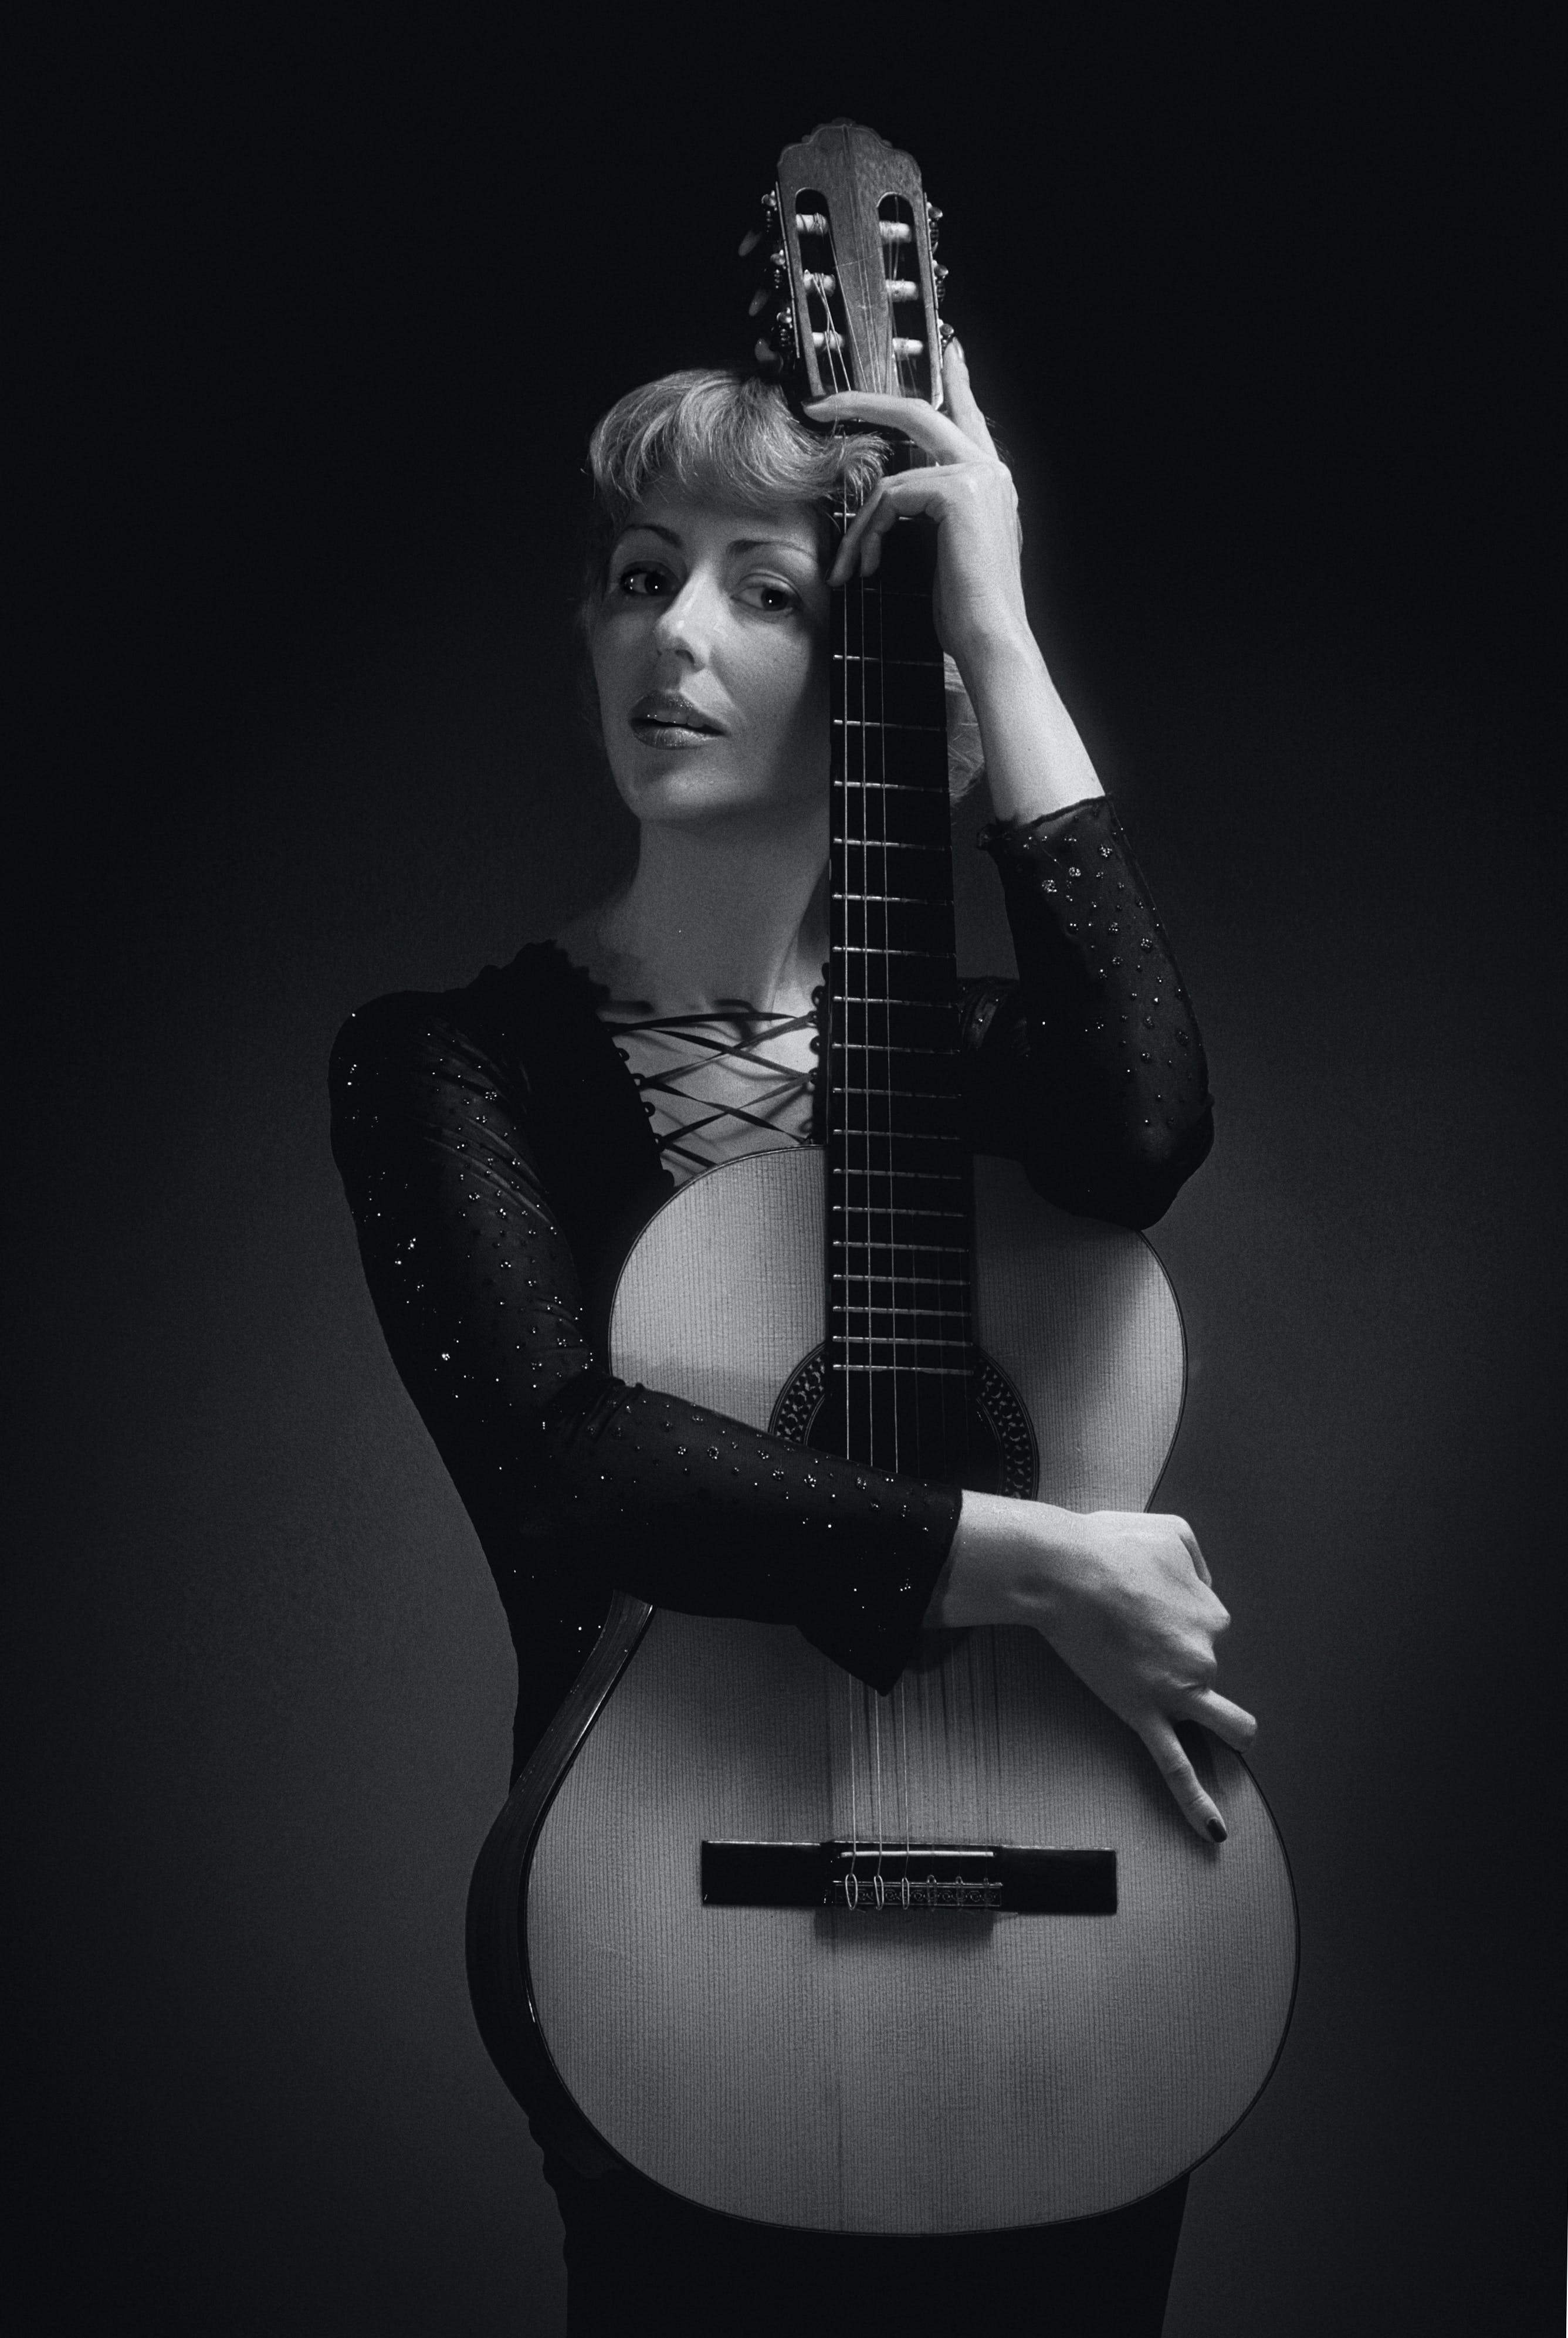 Woman in Black Long-sleeved Dress Holding Classical Guitar